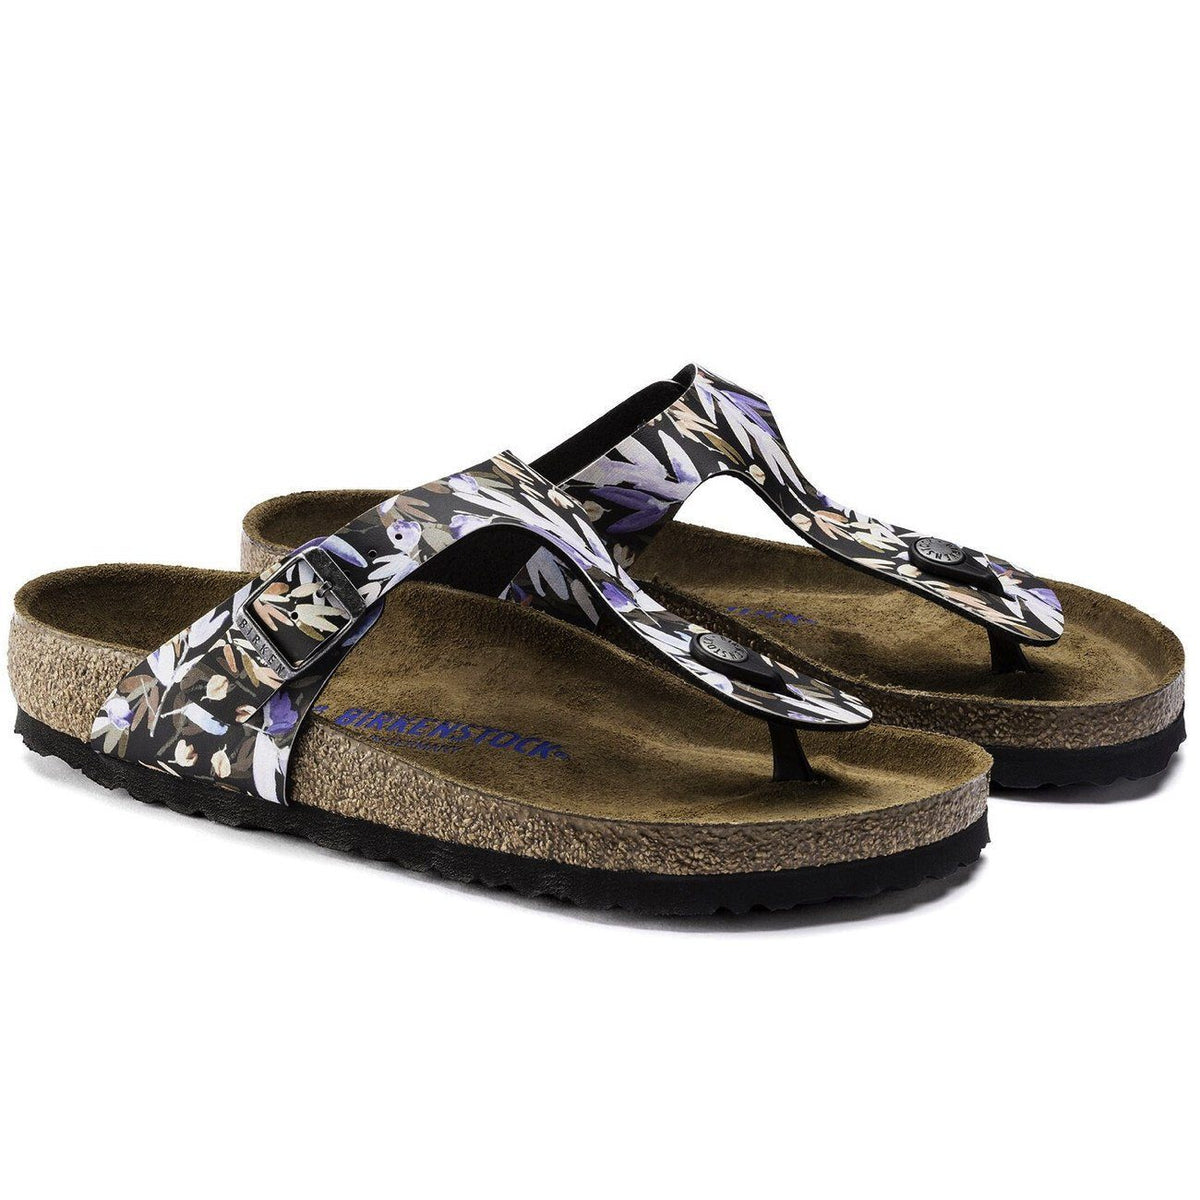 Birkenstock Seasonal, Gizeh Floral Fades, Soft Footbed, Birko-Flor, Regular Fit, Black Sandals Birkenstock Seasonal Floral Fades Black 36